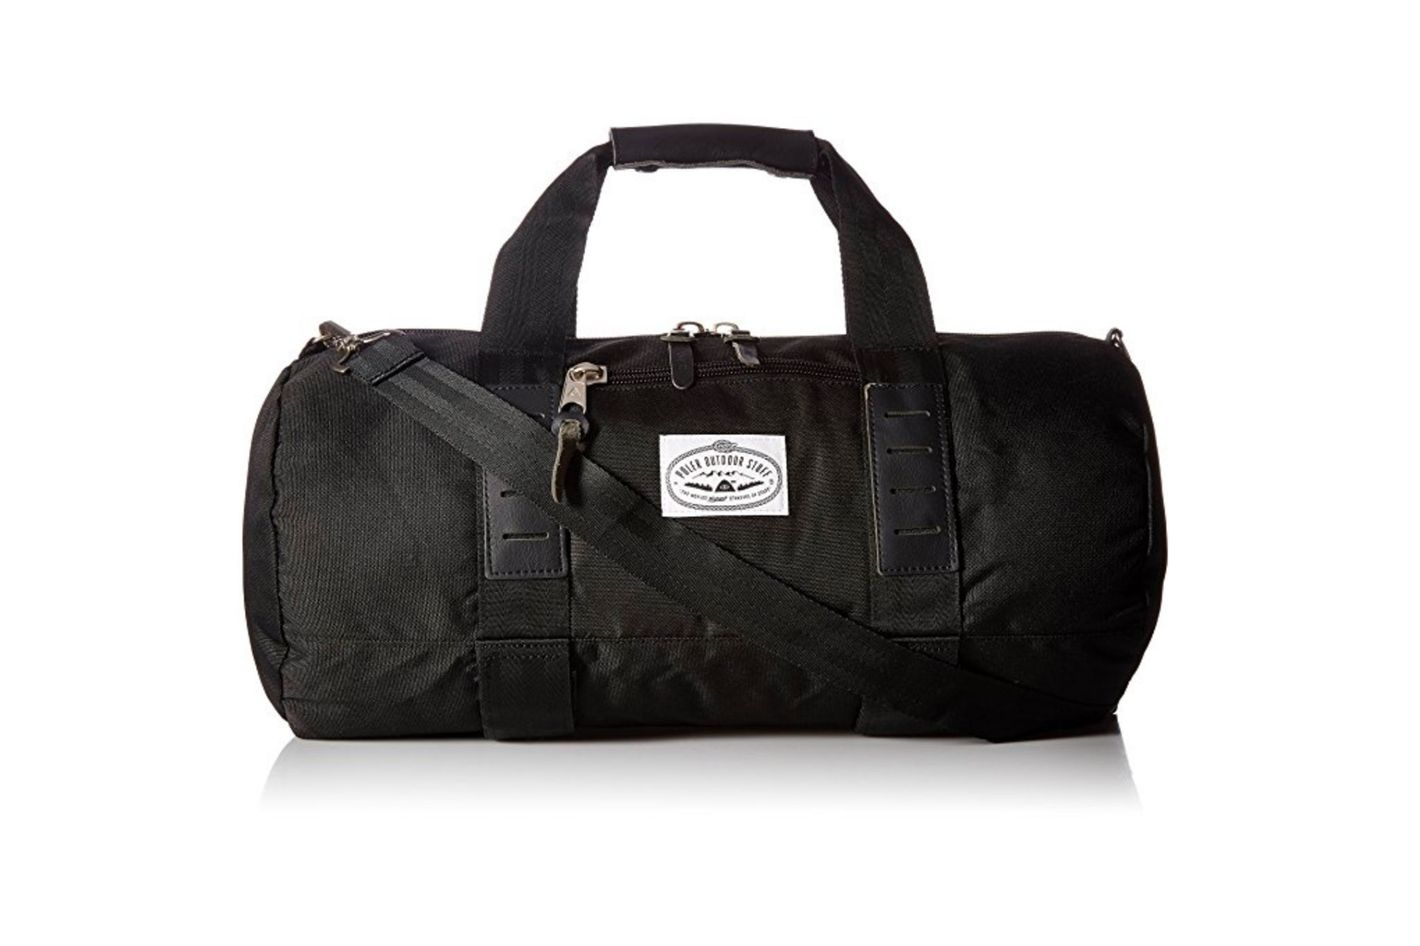 Poler Men's Classic Carry-on Duffle